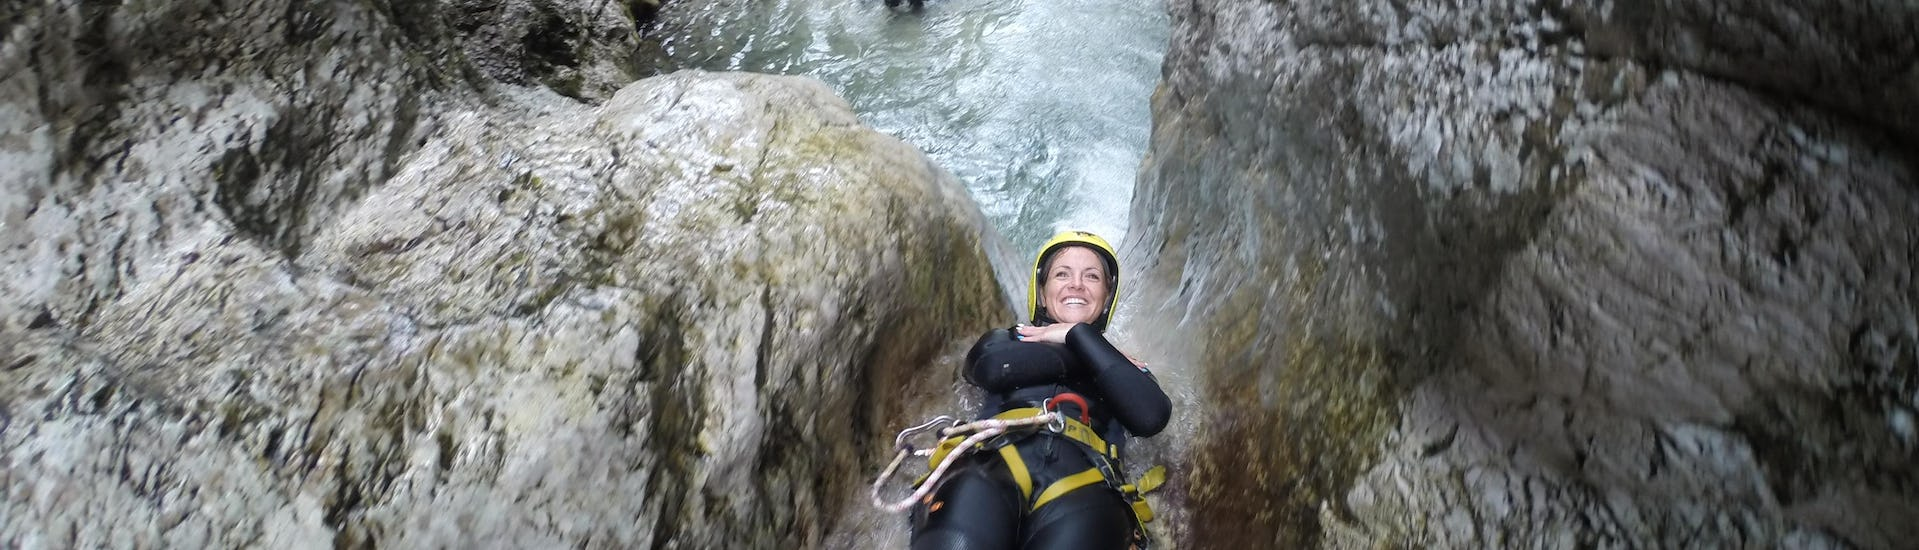 "Canyoning ""Standard"" - Sušec"